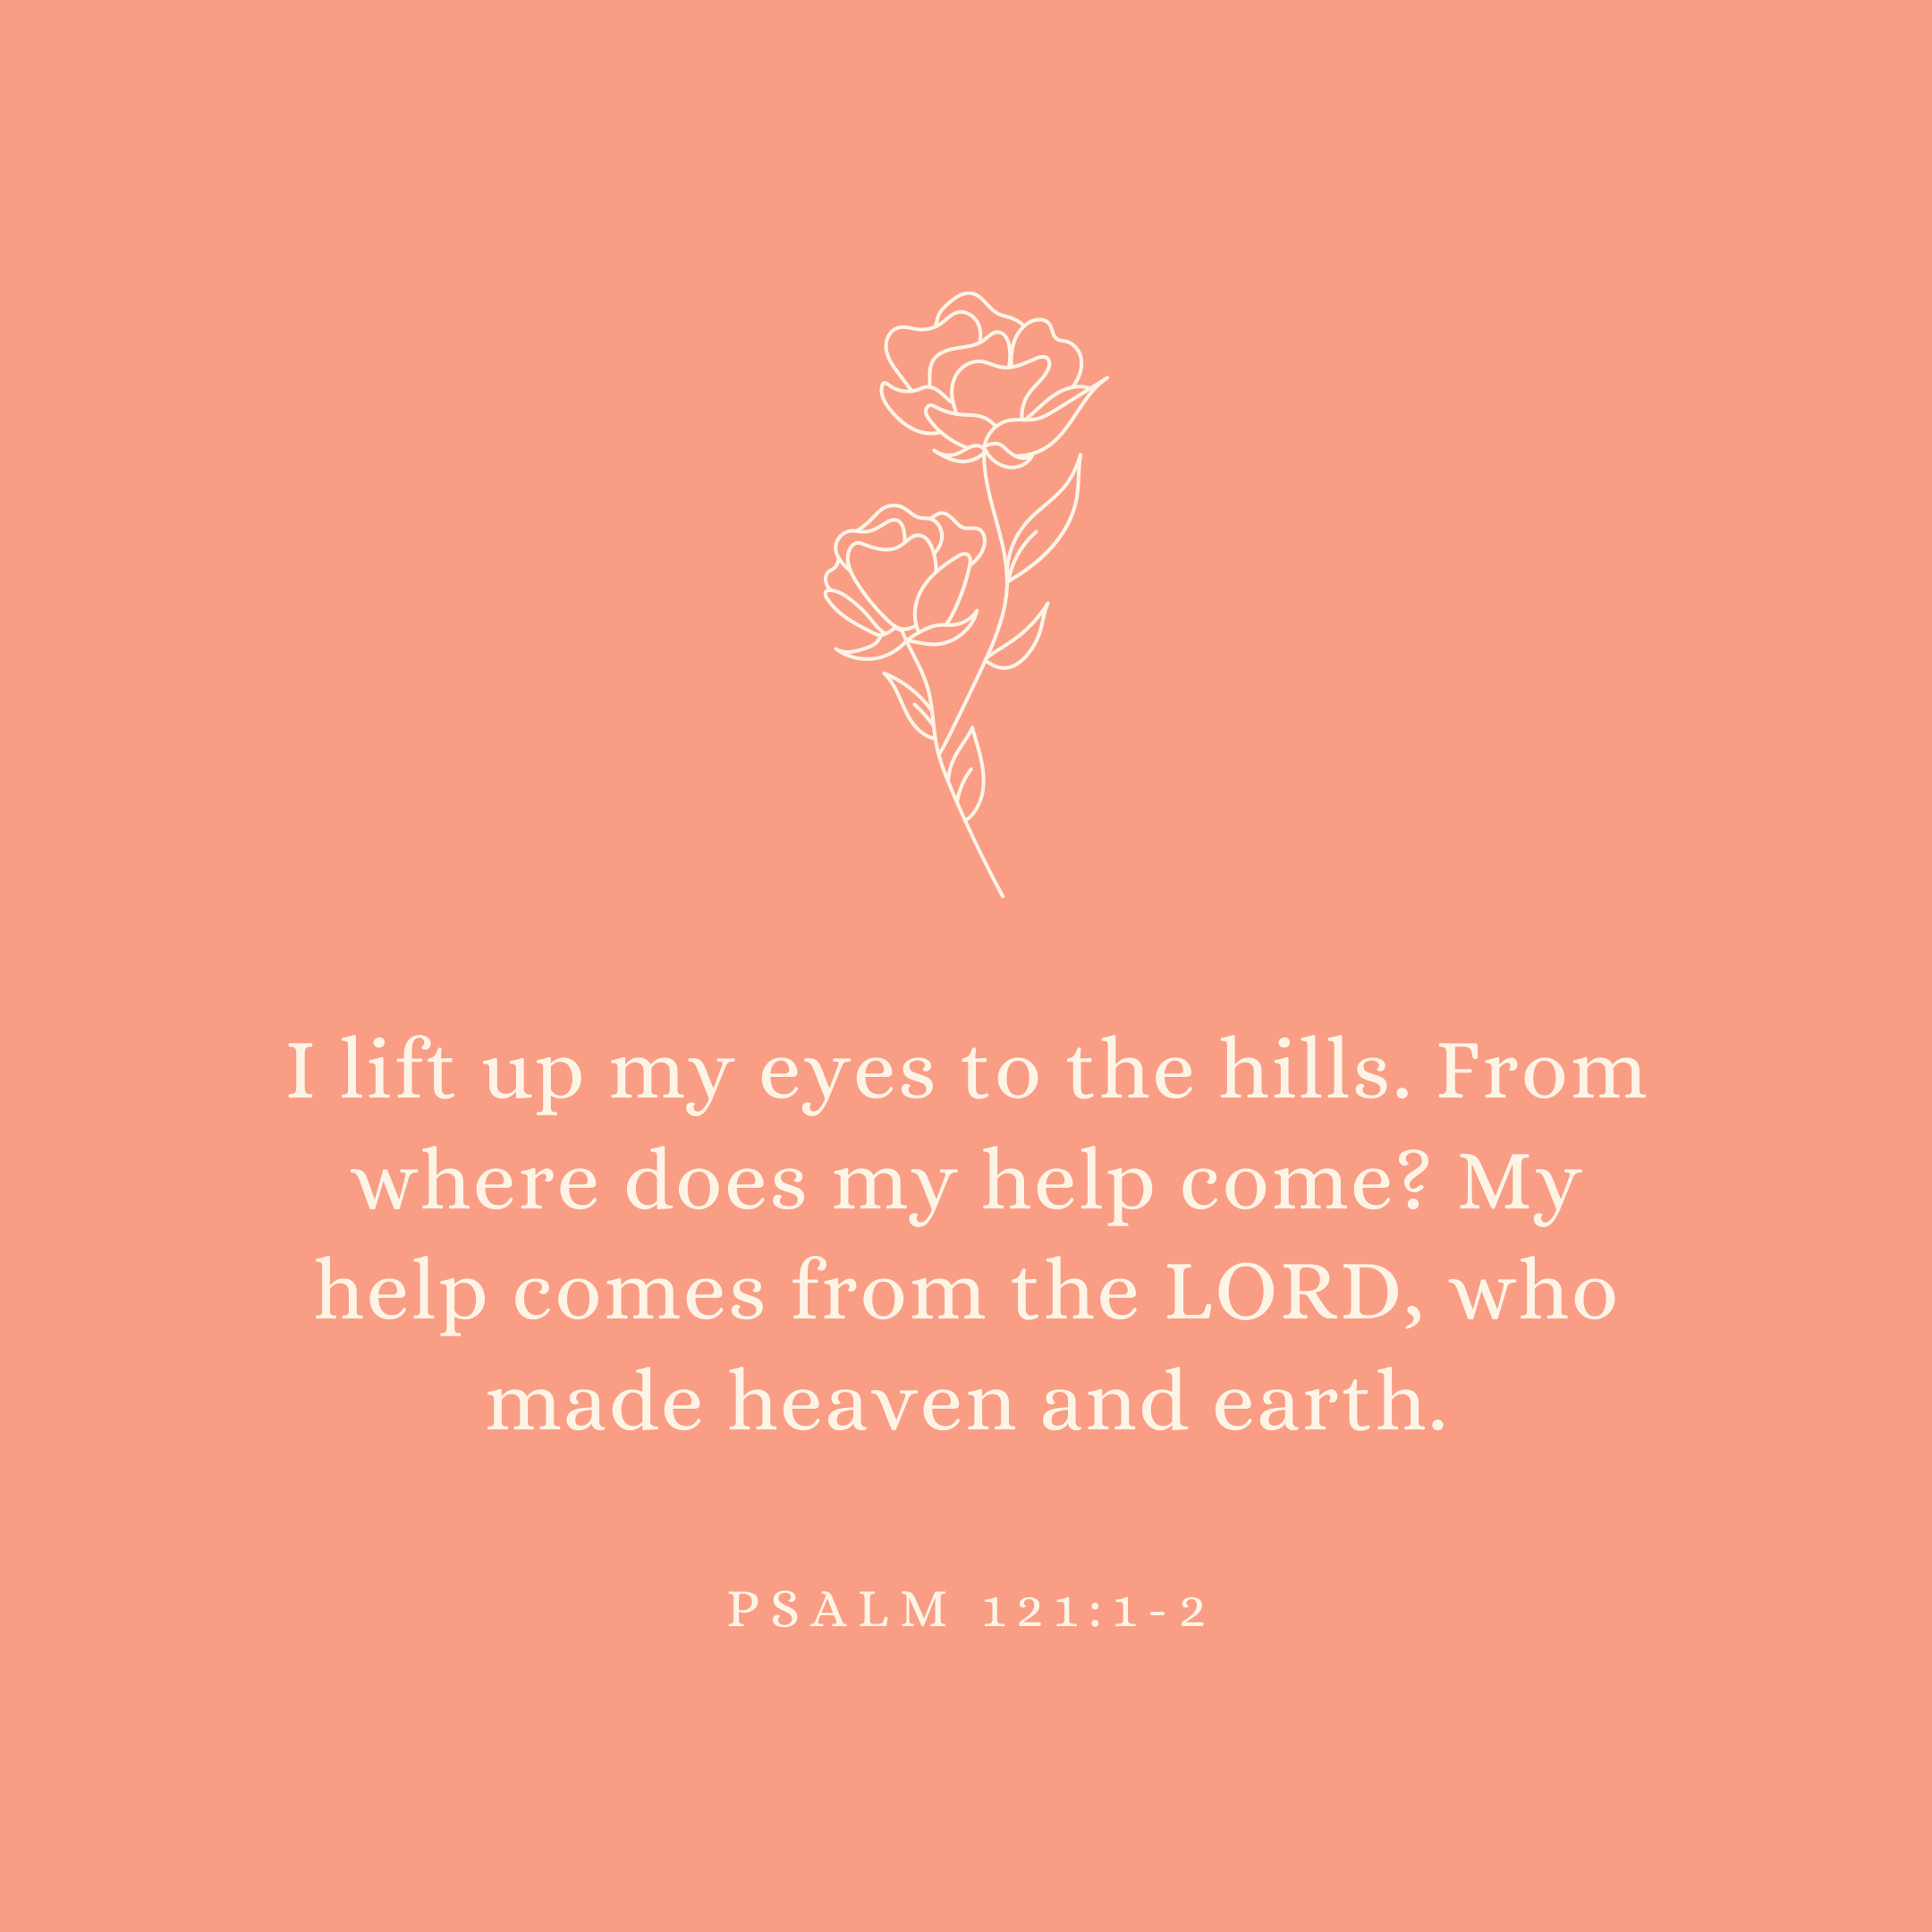 Psalm 121:1-2 I lift up my eyes to the hills. From where does my help come? My help comes from the LORD, who made heaven and earth.